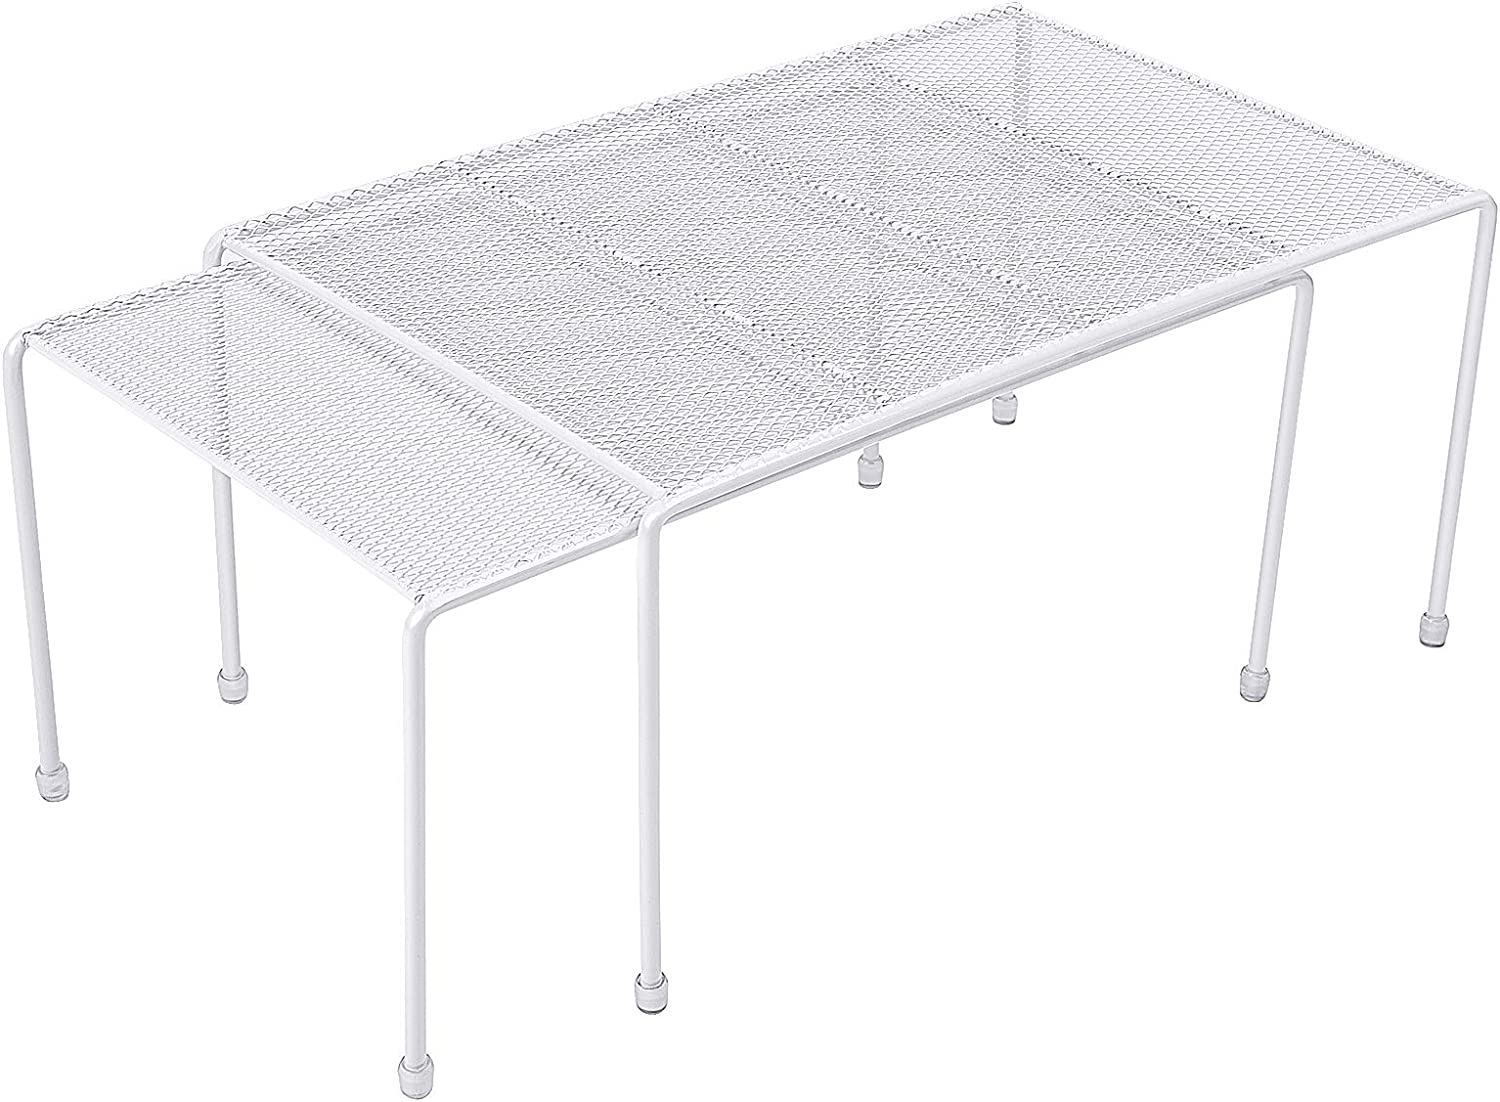 Expandable Stackable Kitchen Cabinet and Counter Shelf Organizer,Kitchen Shelves, Cabinet Organization,White